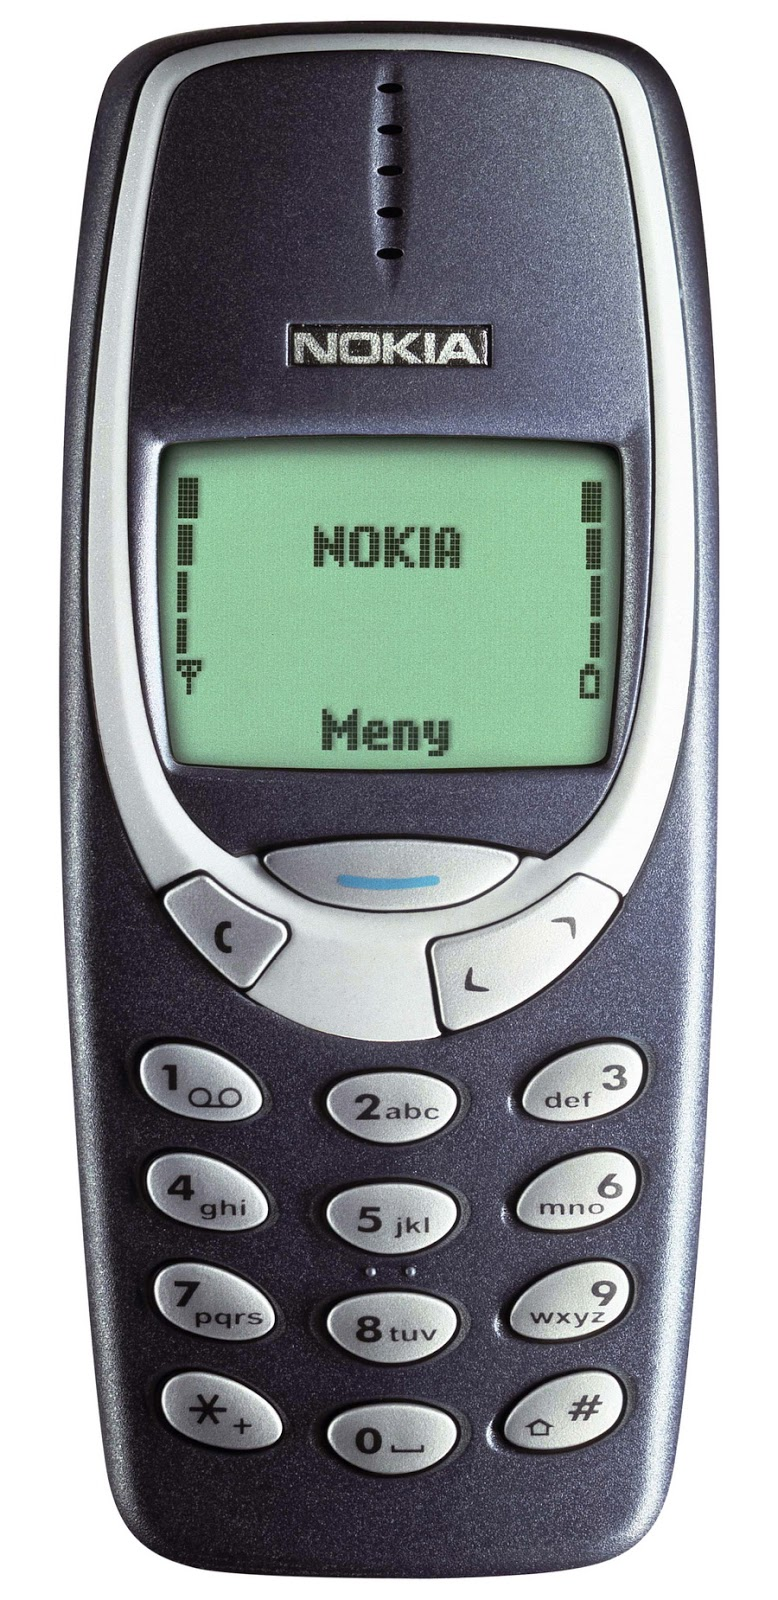 NOKIA 3310  7 Reasons Why it was the Best   eZimbabwe